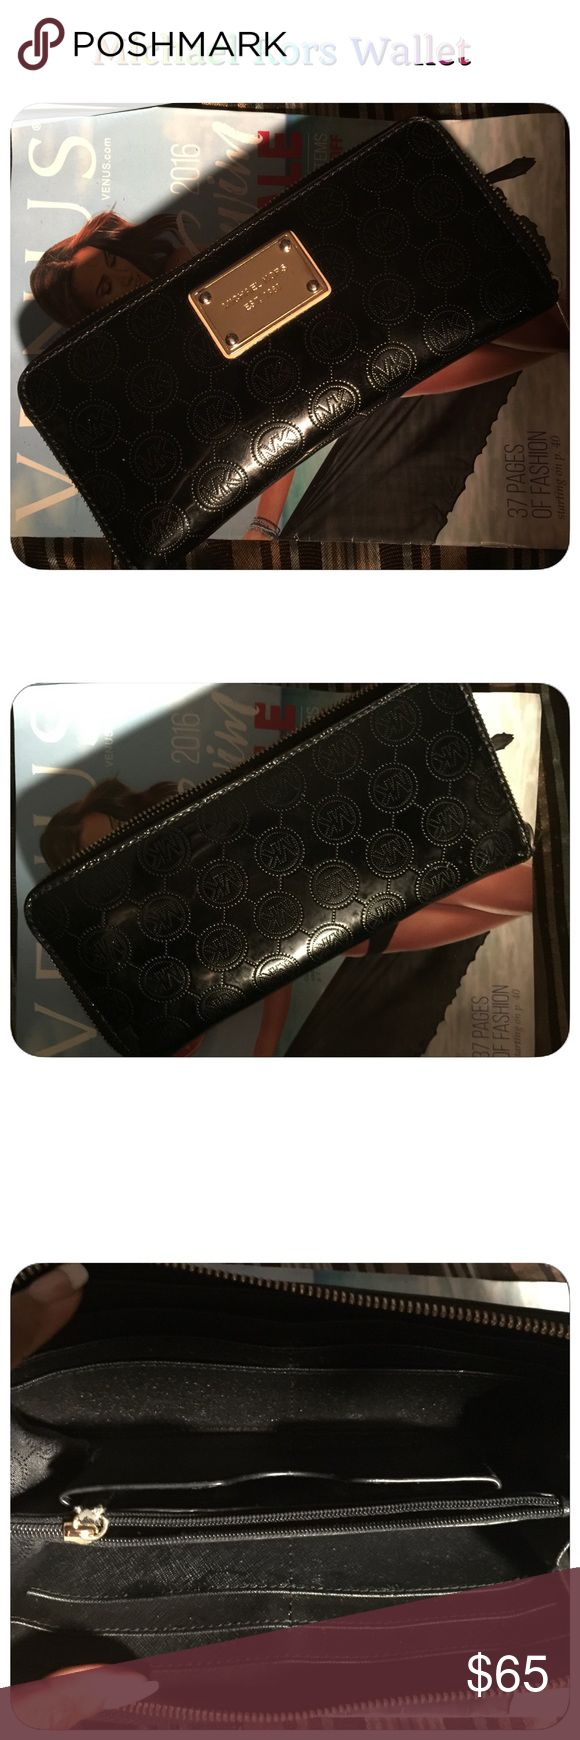 Michael Kors Black Wallet (Today Only) Very cute Michael Kors Bags Wallets